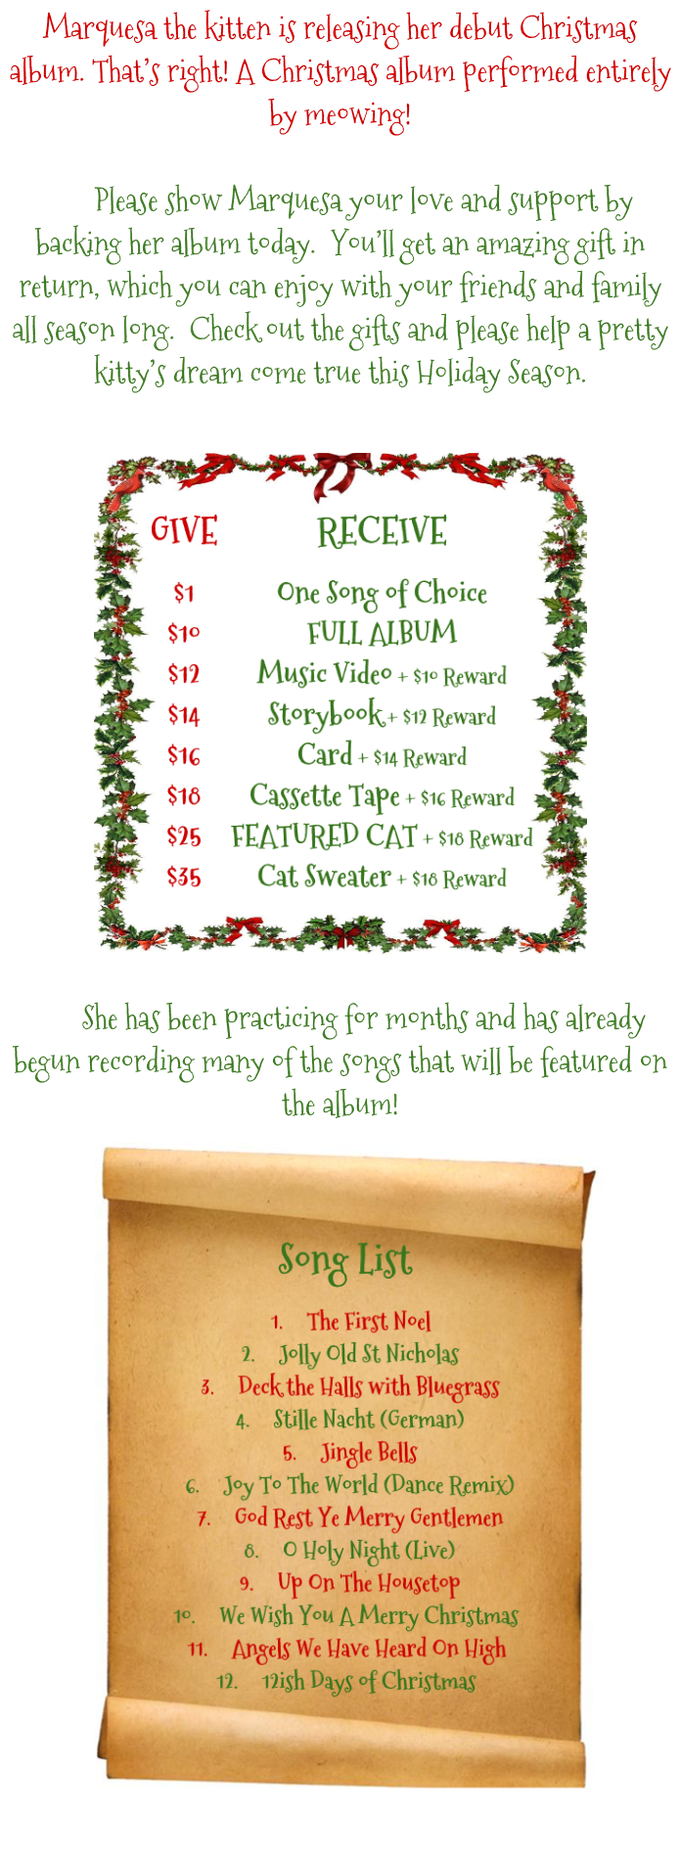 A Christmas Album for Cats, by Cats! by Marquesa the Kitten